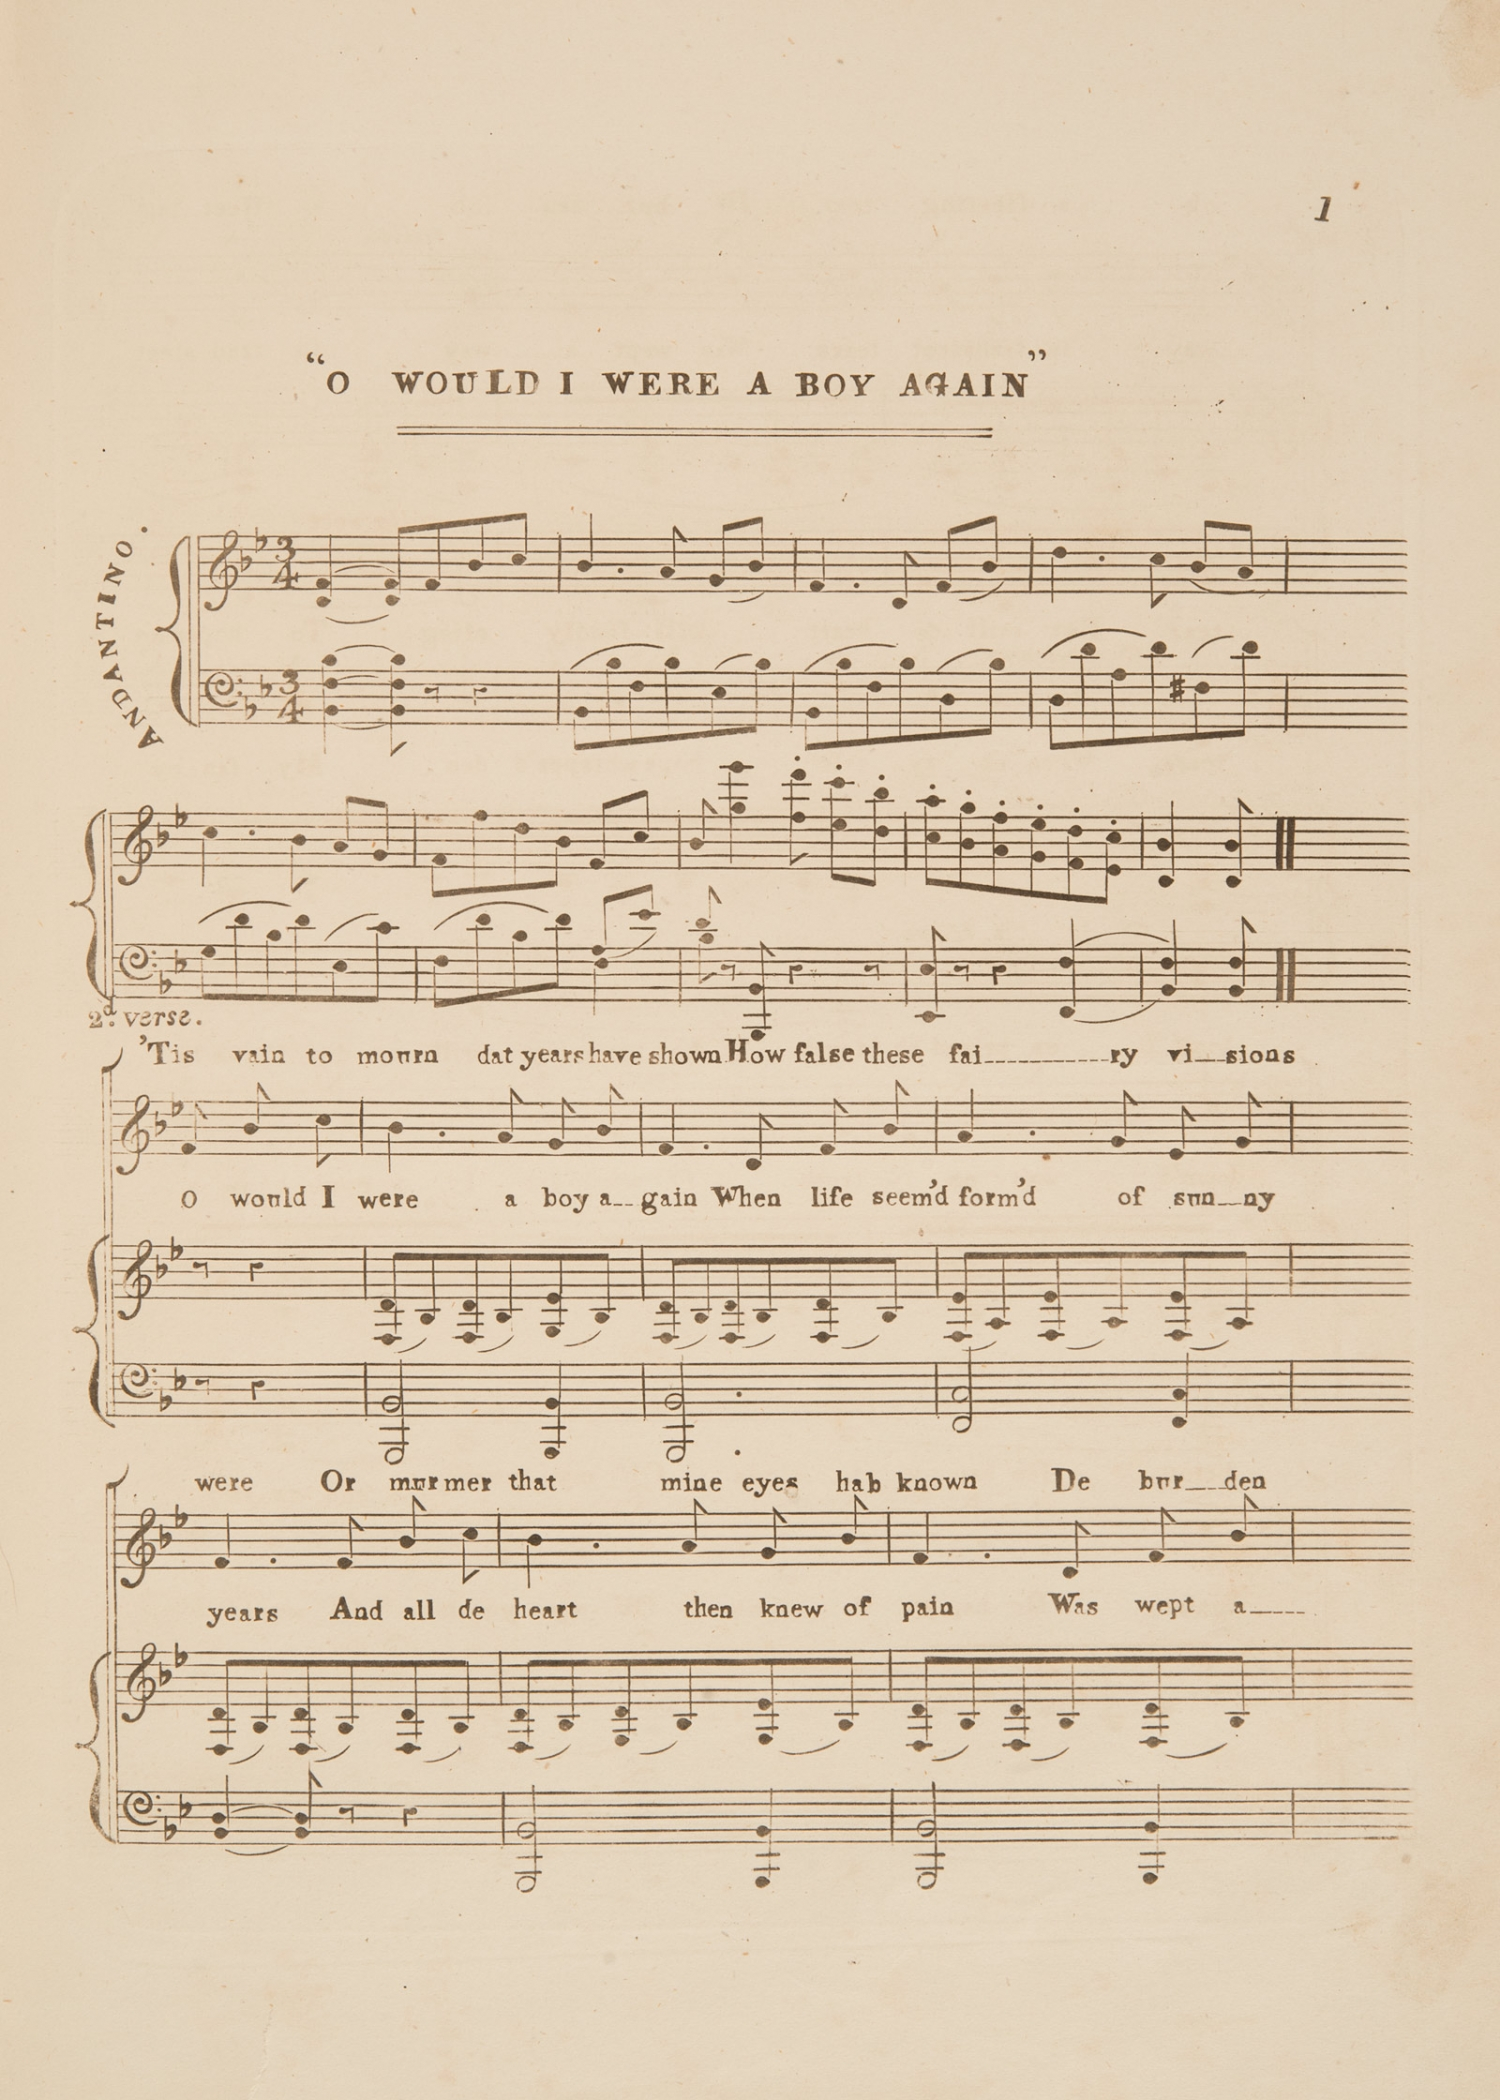 Sheet music, 'O, would I were a Boy again' by Frank Romer, page 1, published circa 1854